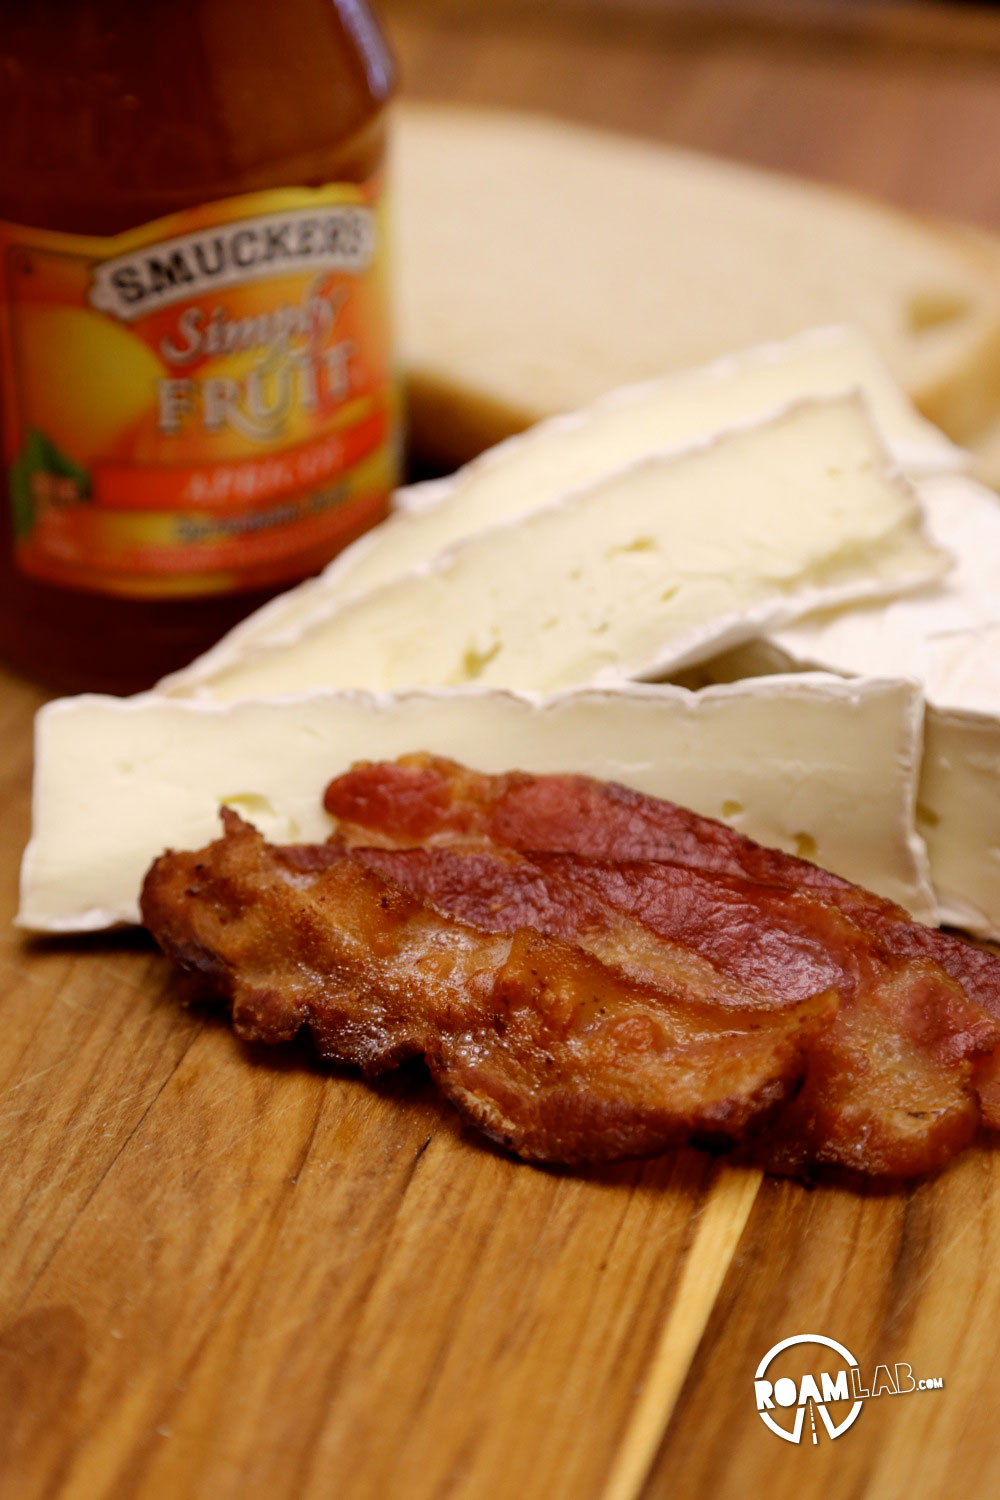 Brie? Bacon? Apricot jam?Check! We have all the ingredients ready to make a Glamper's Bacon Brie Apricot Toasted Sandwich